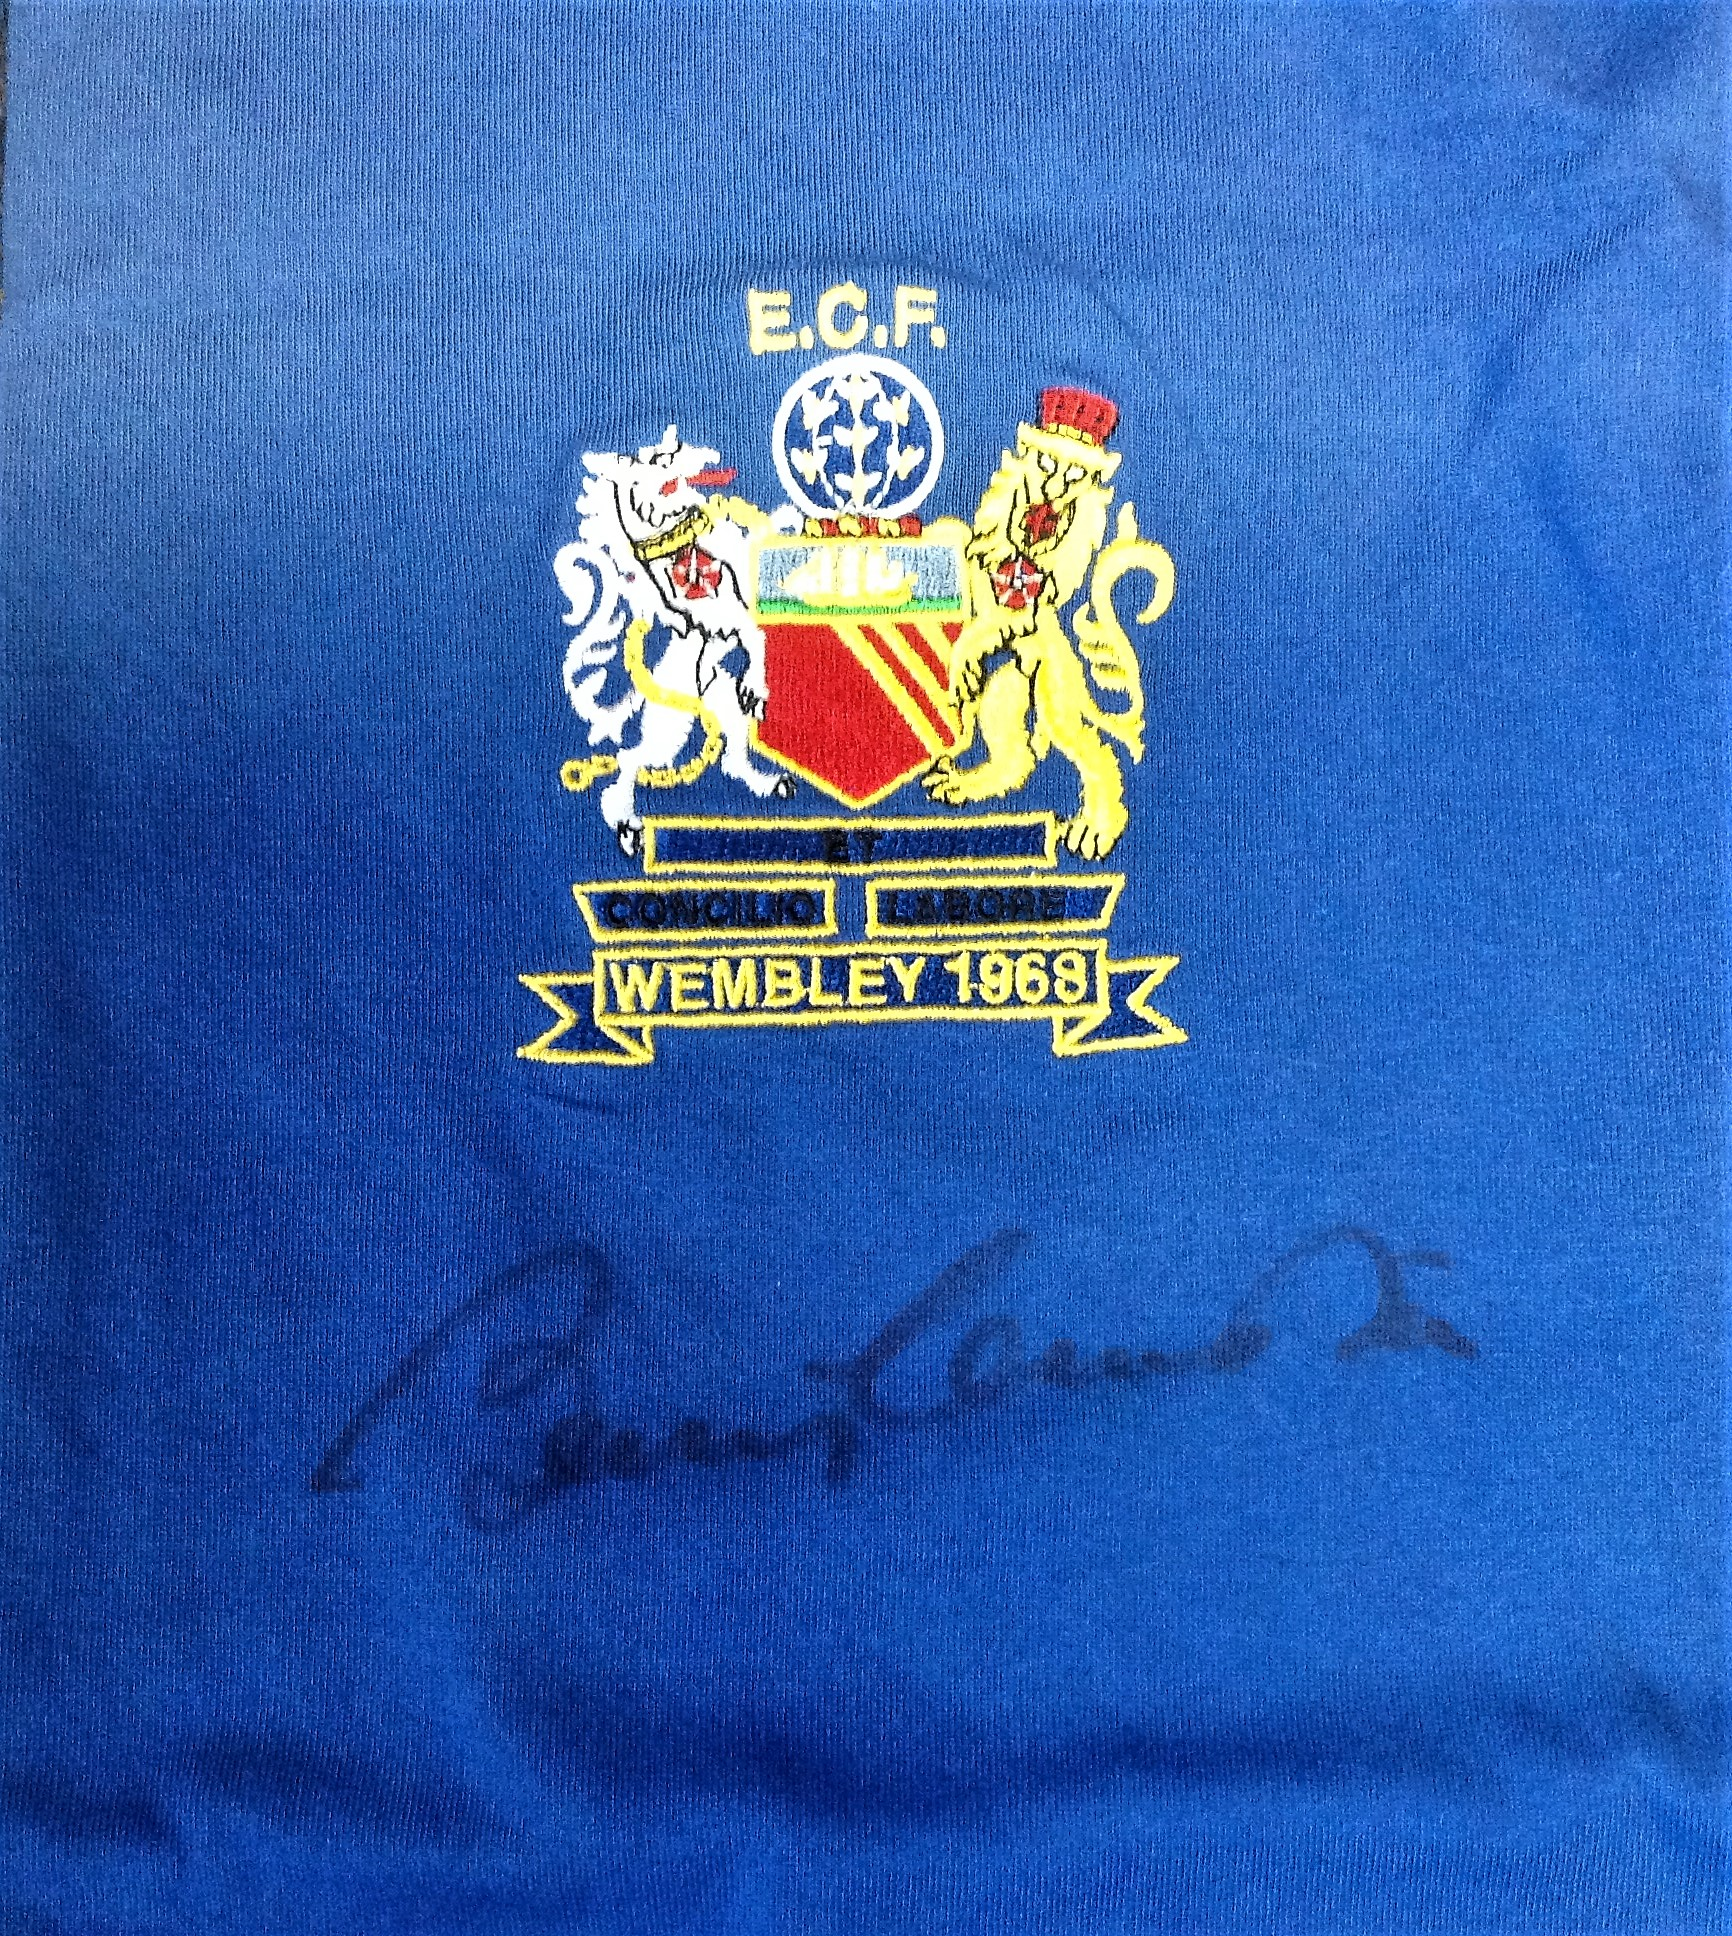 Lot 41 - Bobby Charlton signed Manchester United signed 1968 European cup final replica shirt. The 1968